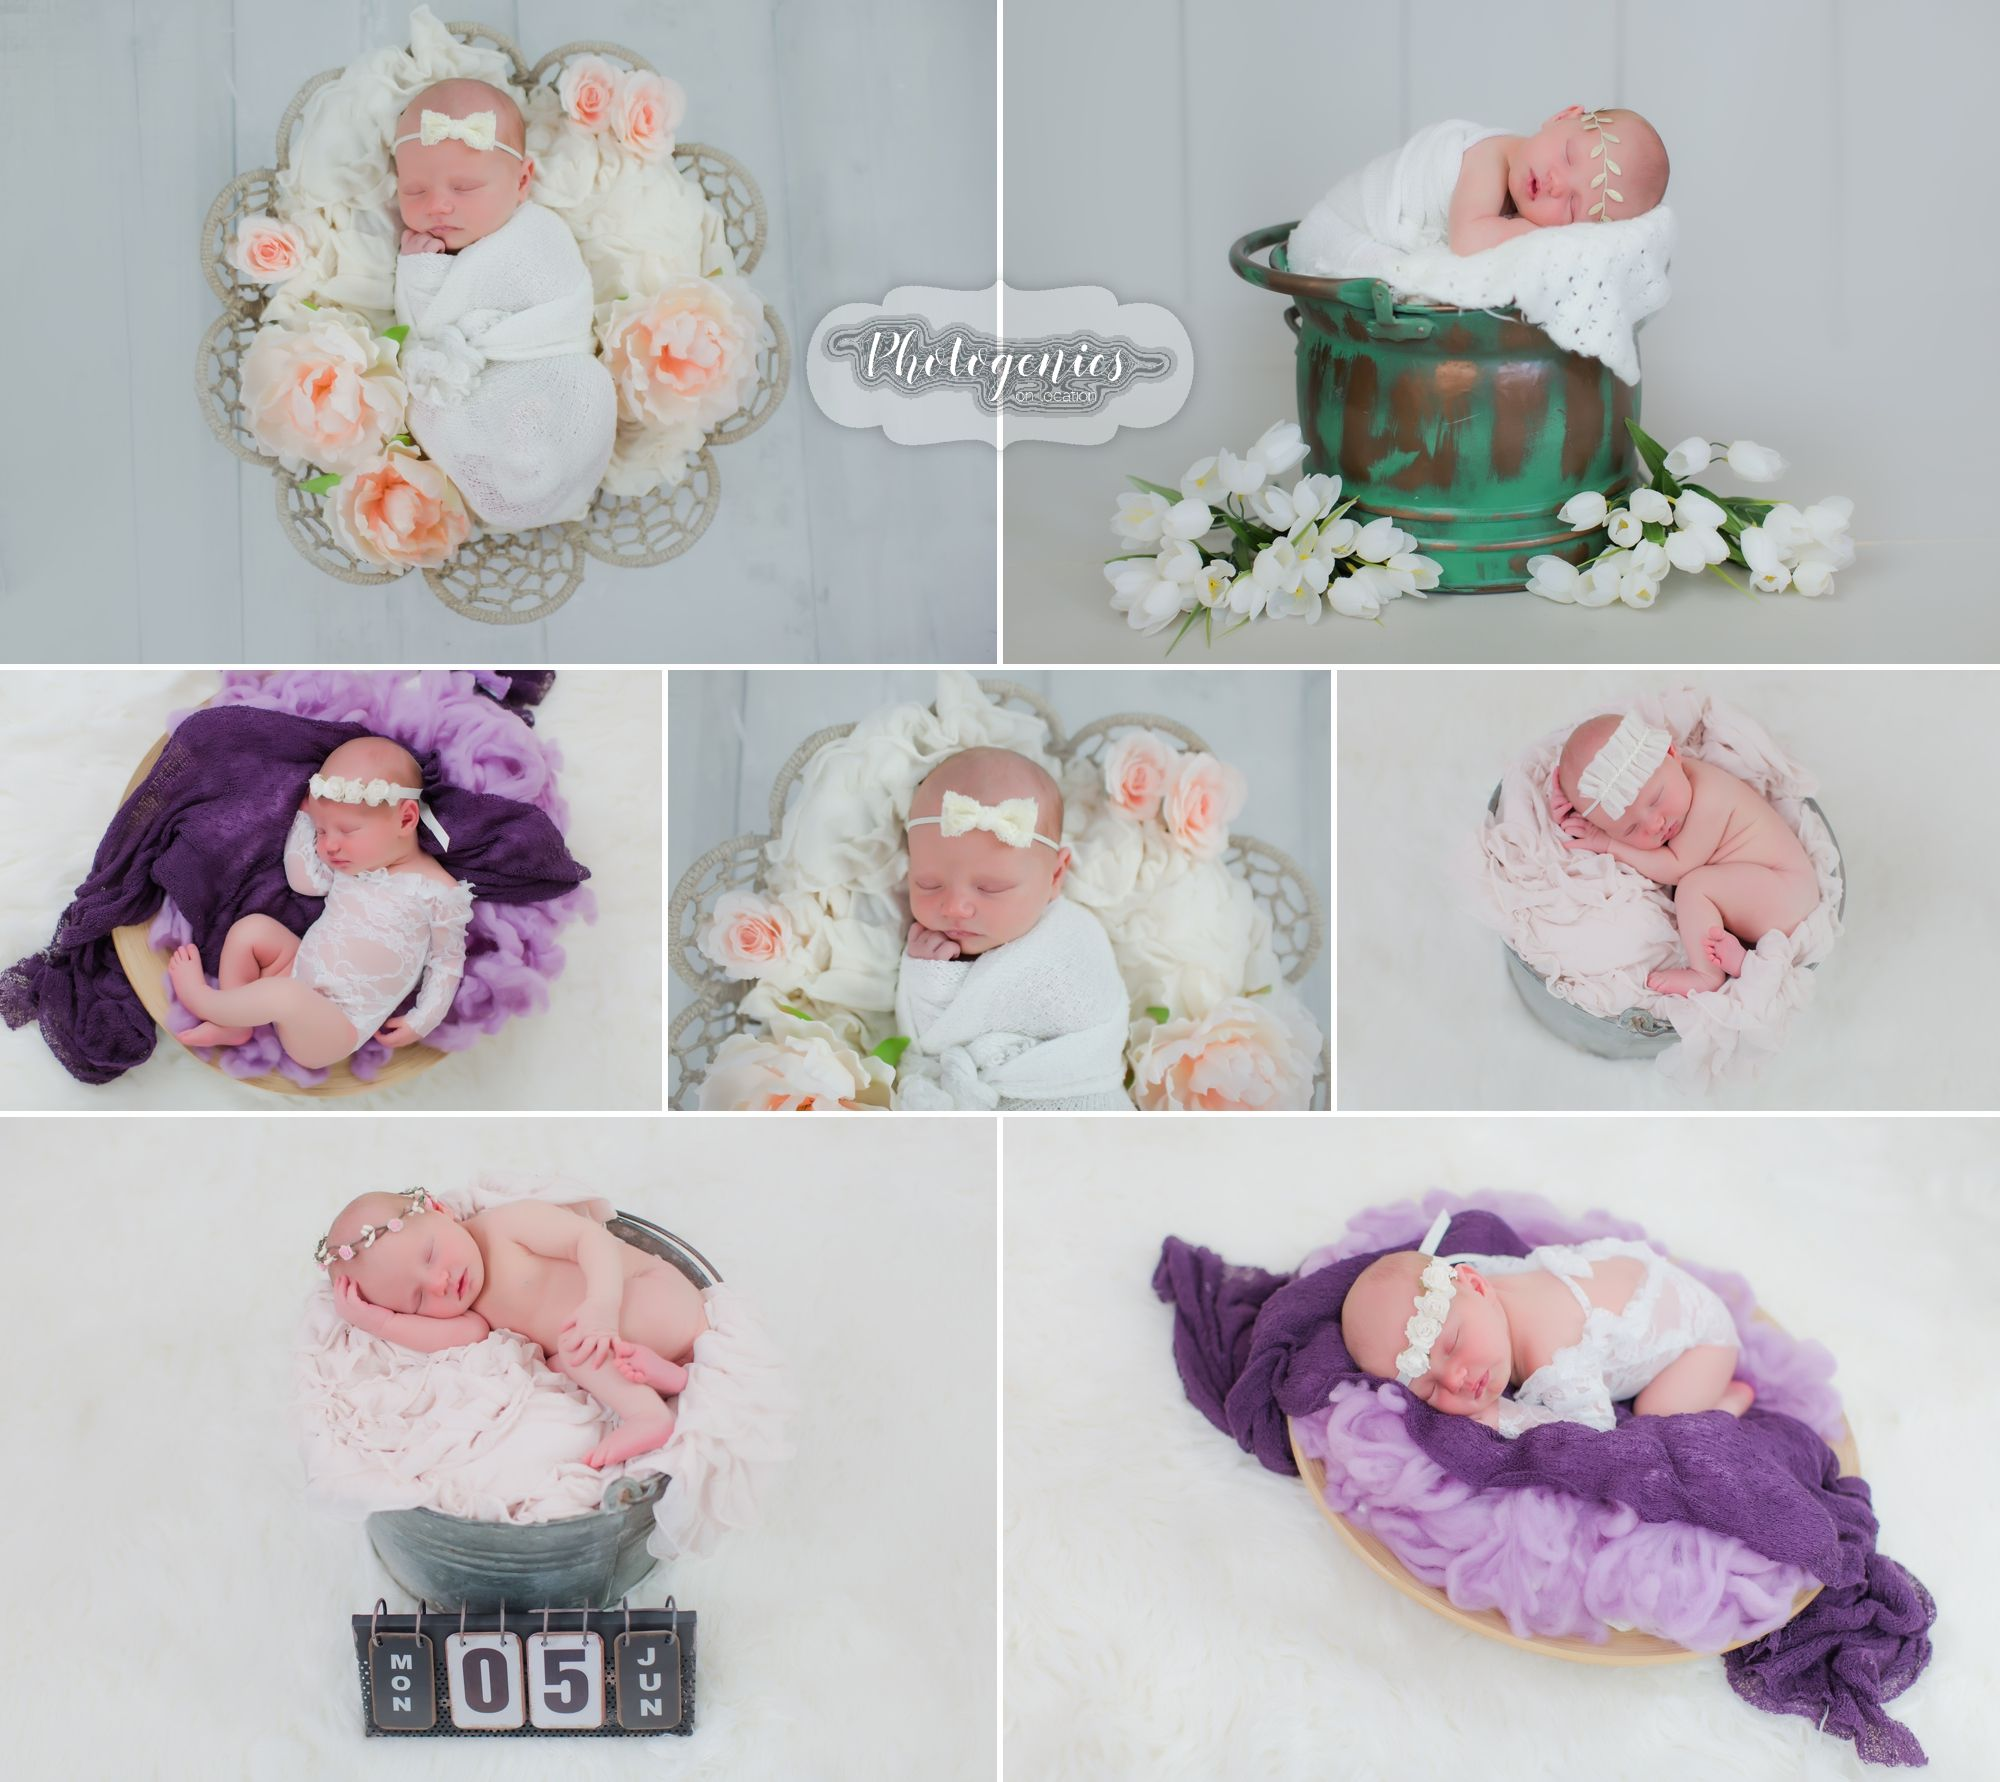 Newborn girl siblings photography shirts outfits ideas brothers flowers props 2 photography themes sibling photography newborn poses newborn session